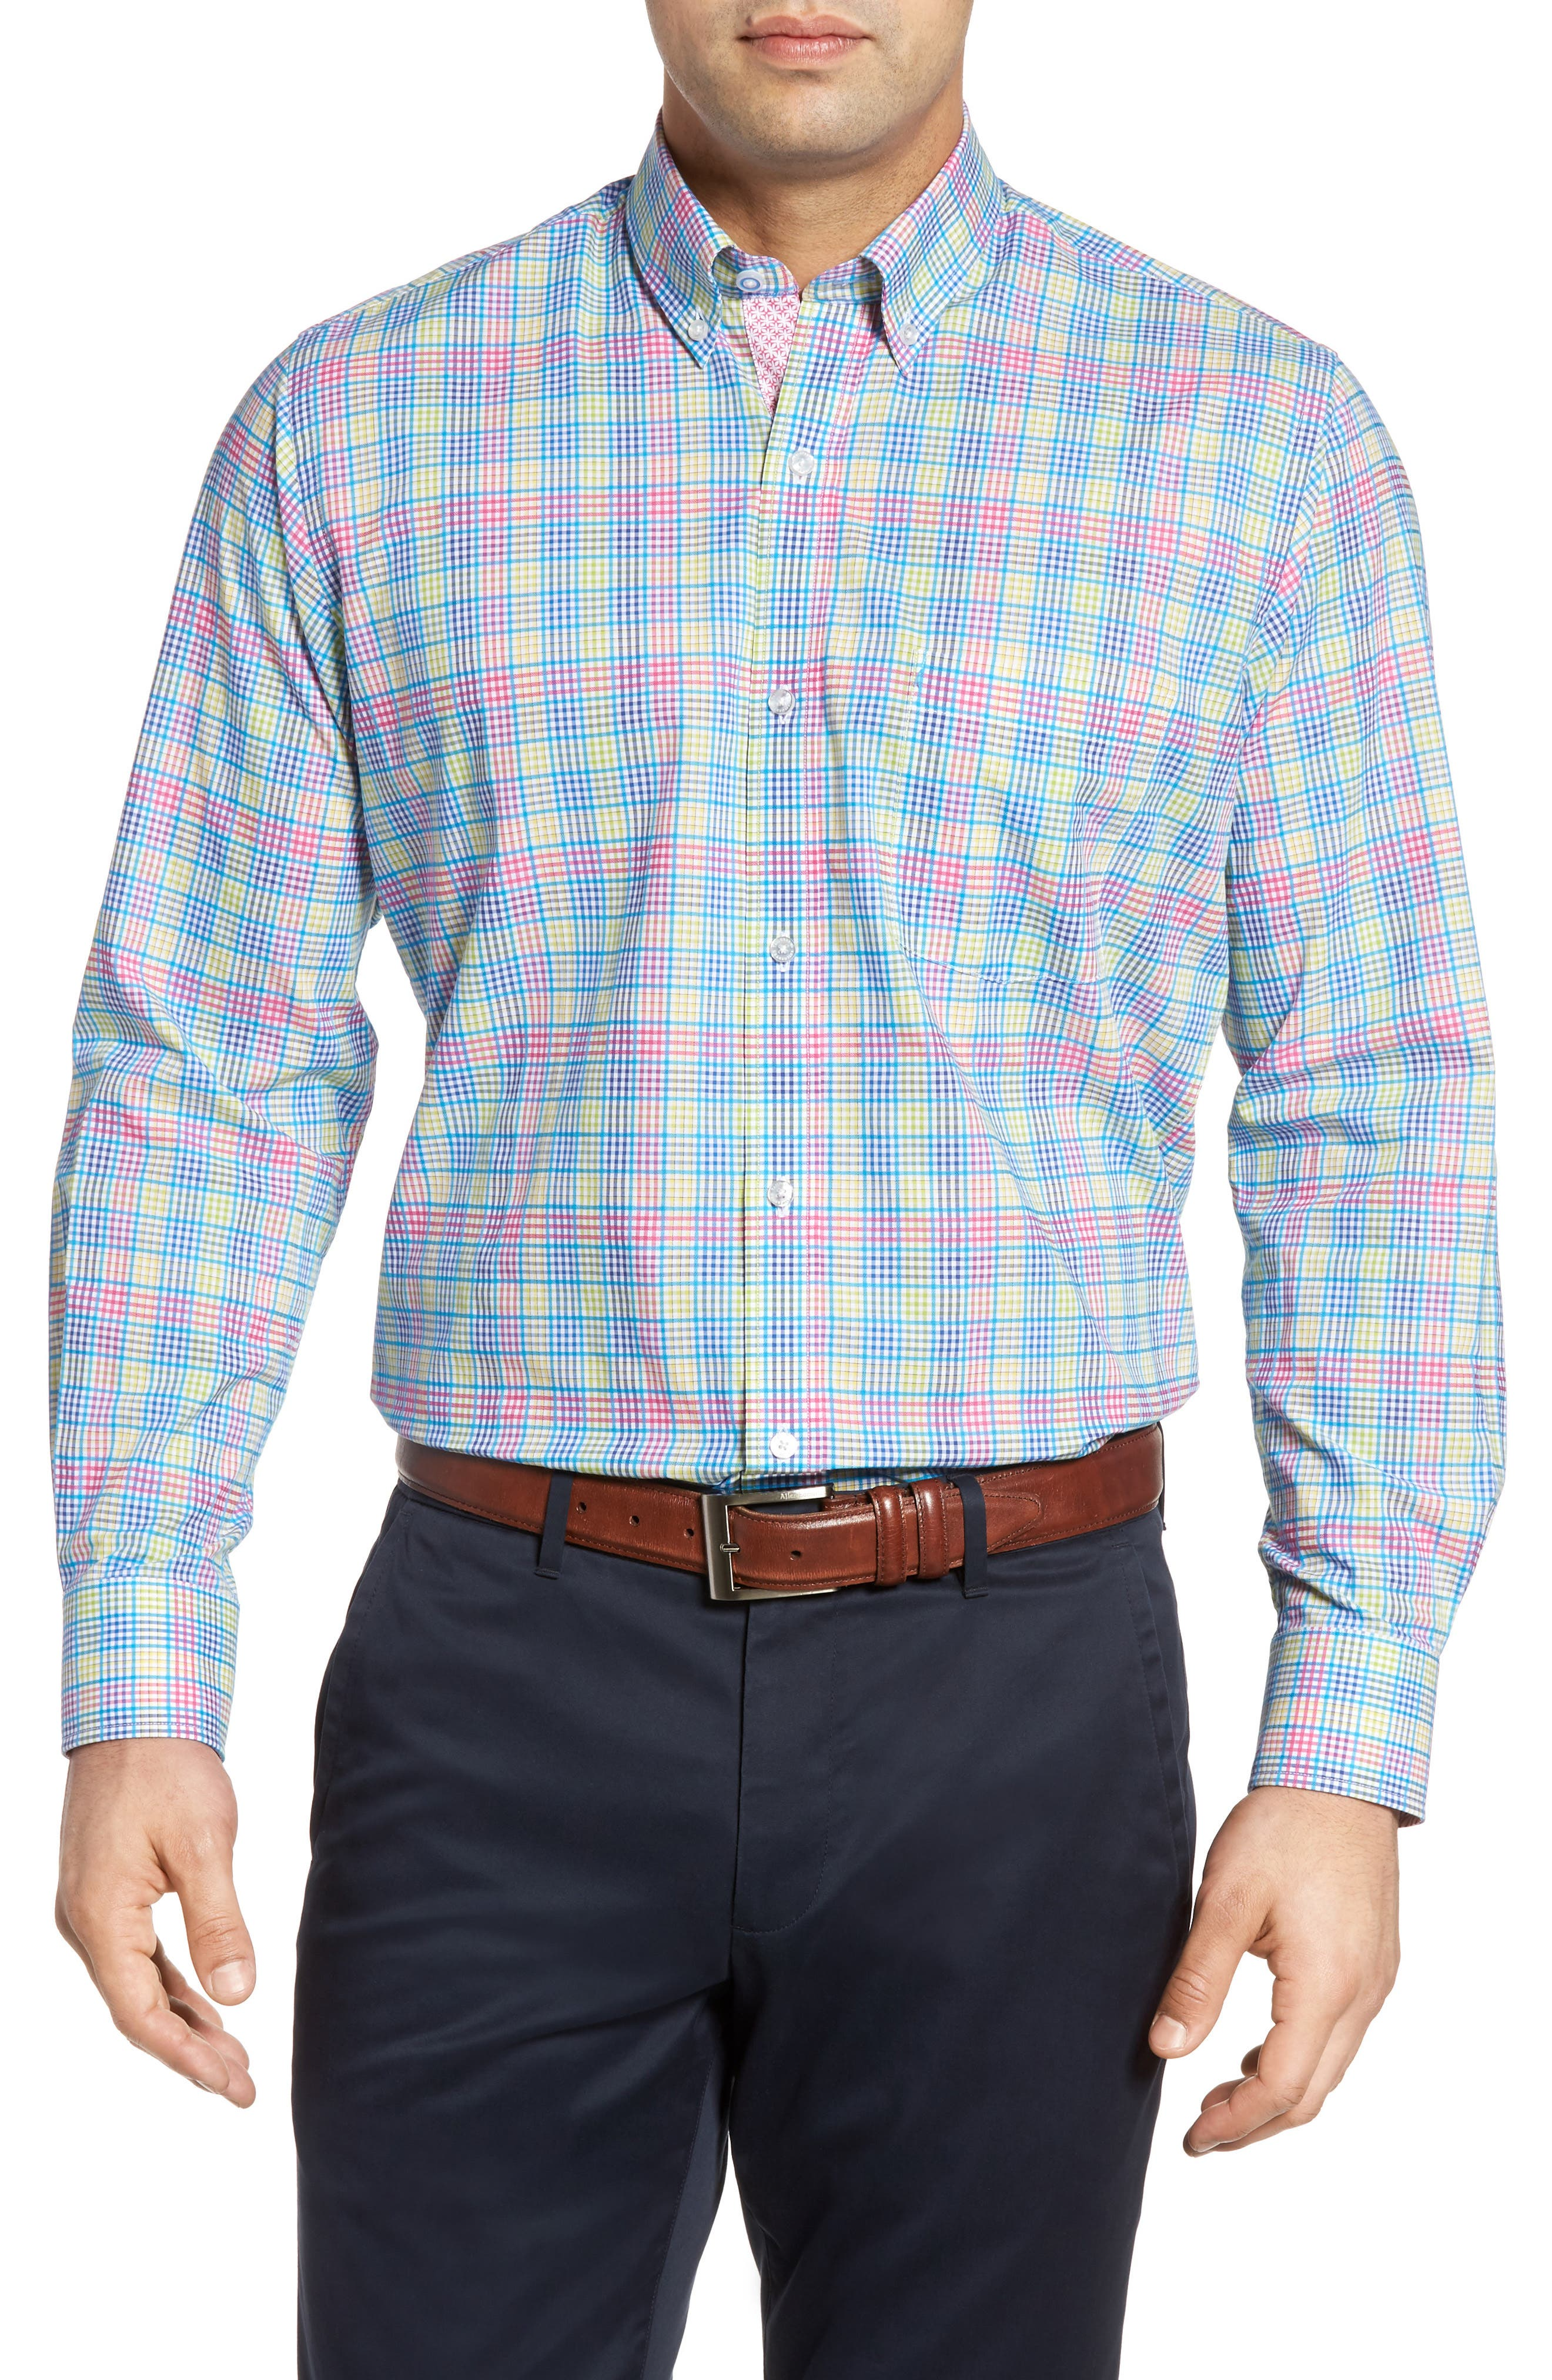 Peachleaf Sport Shirt,                         Main,                         color, 400